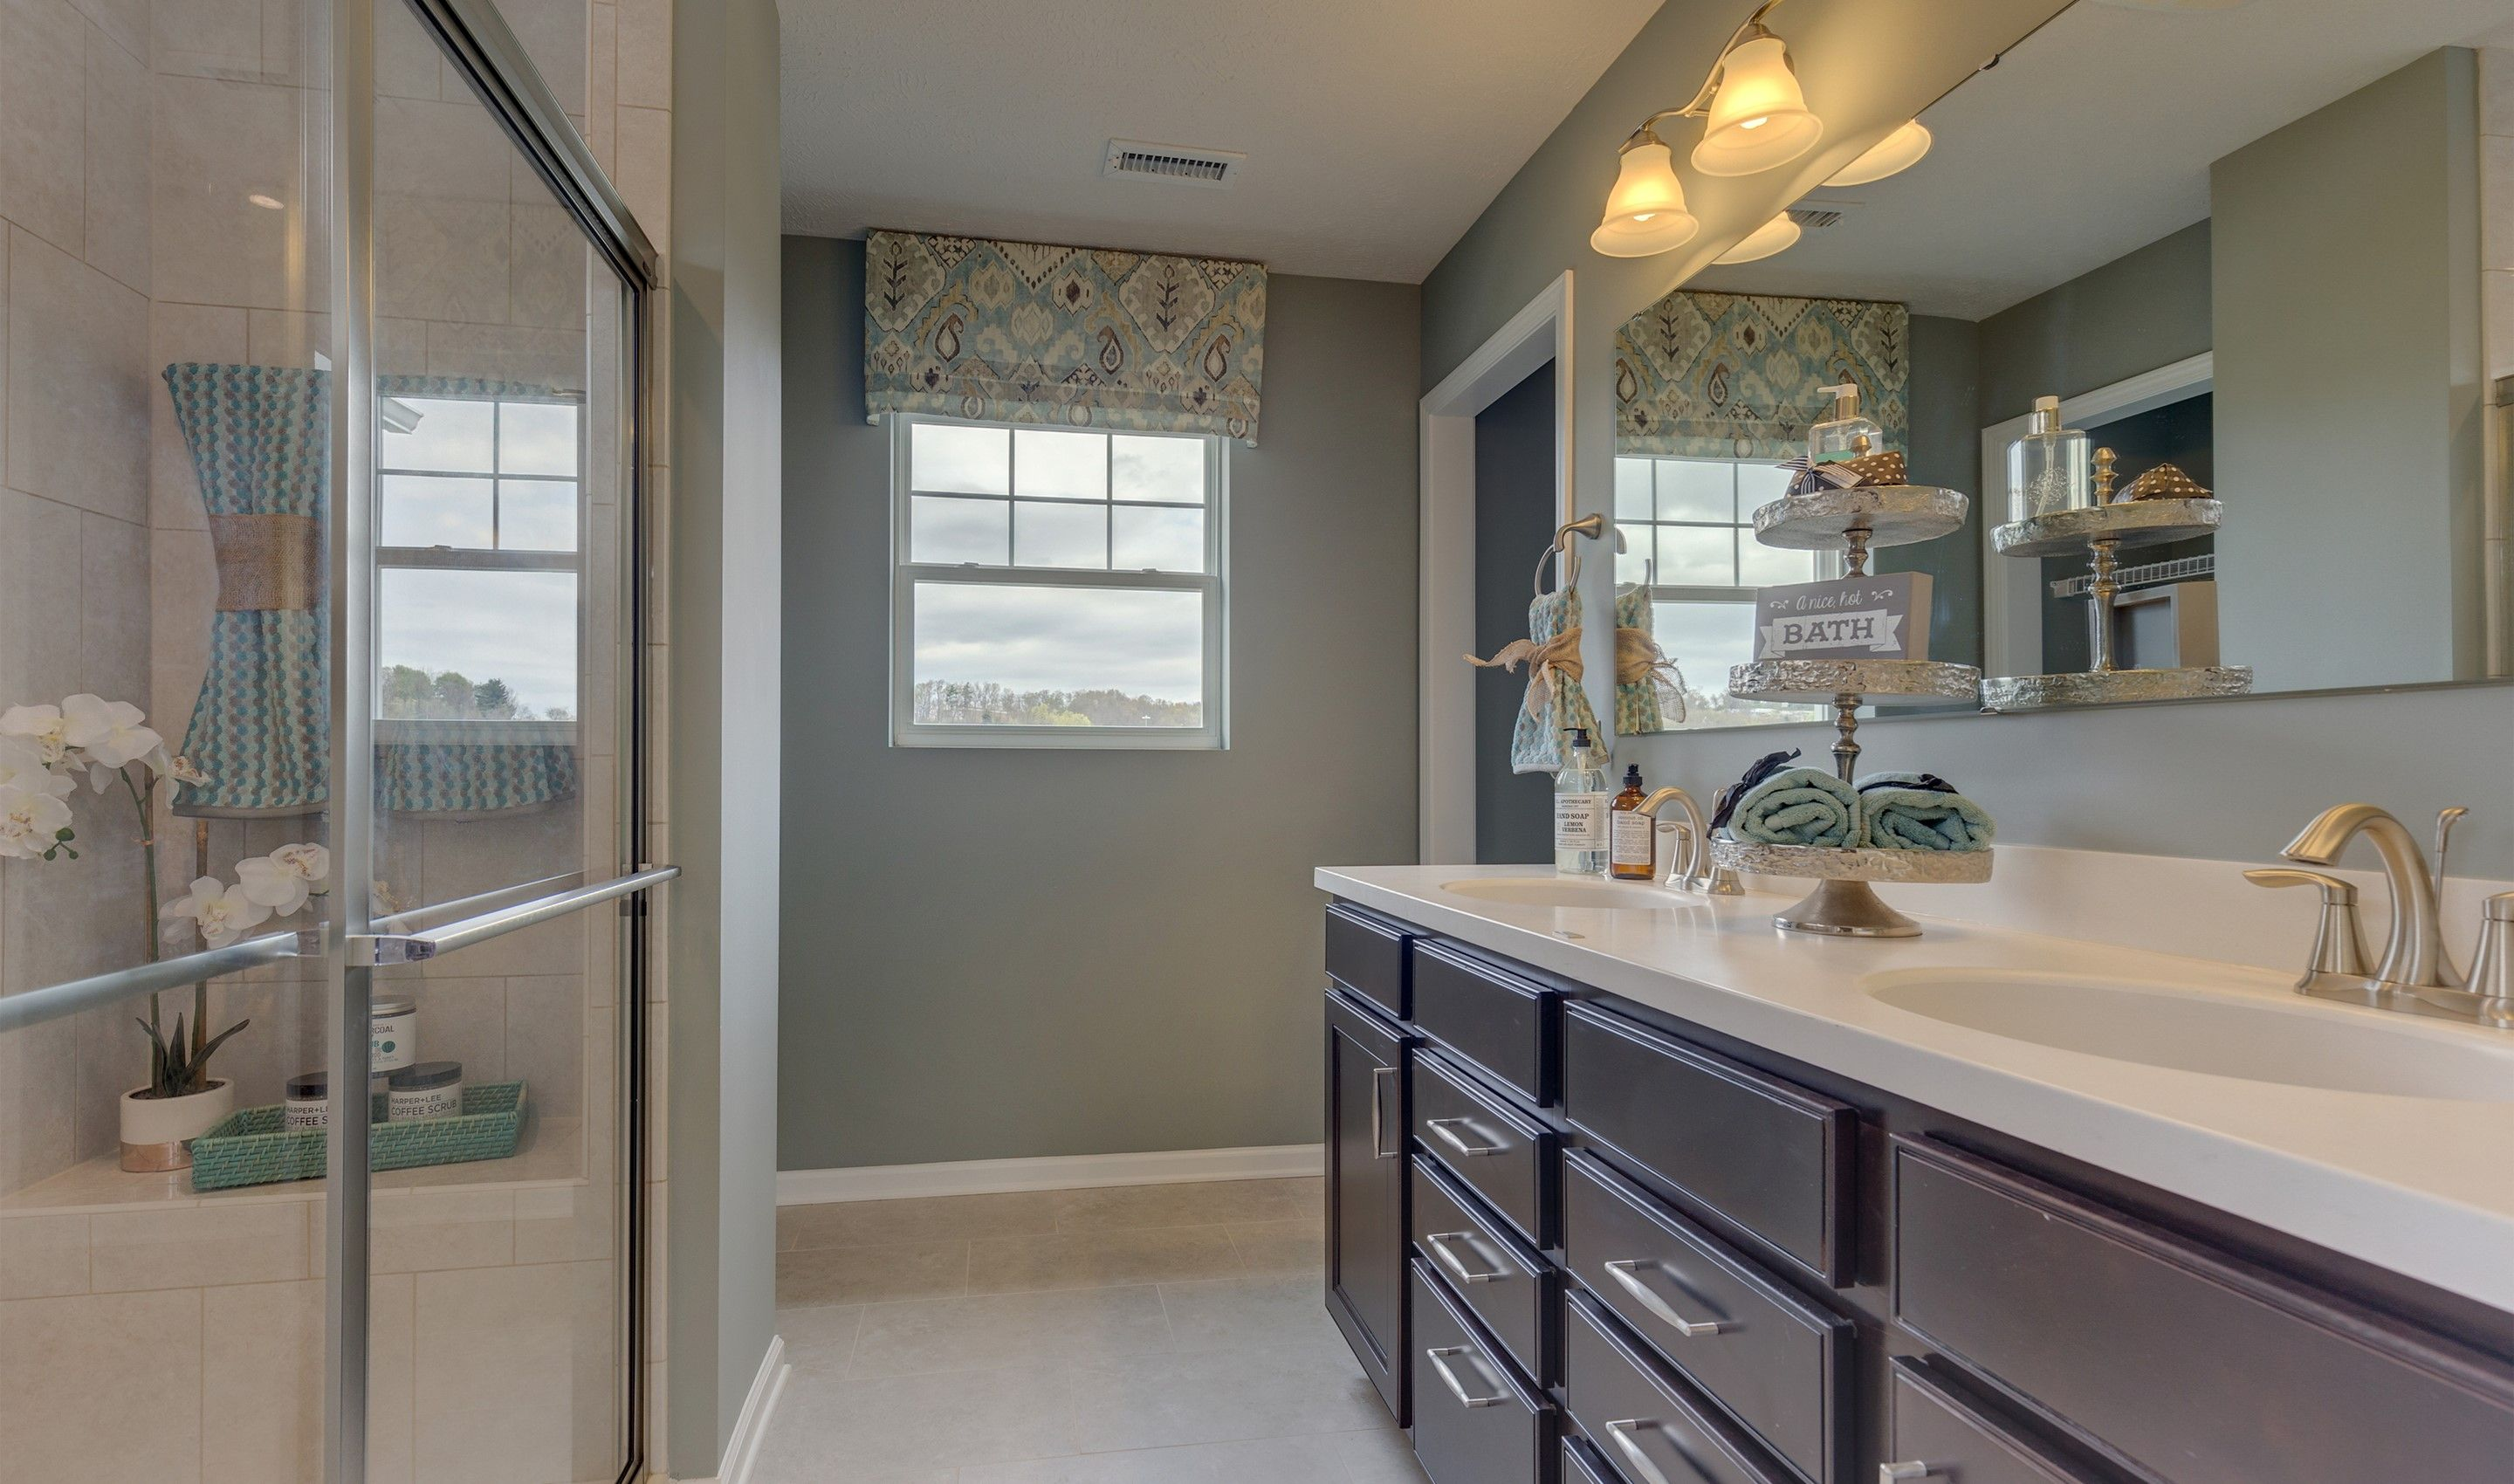 Bathroom featured in the Turner By K. Hovnanian® Homes - Build on Your Lot in Toledo, OH